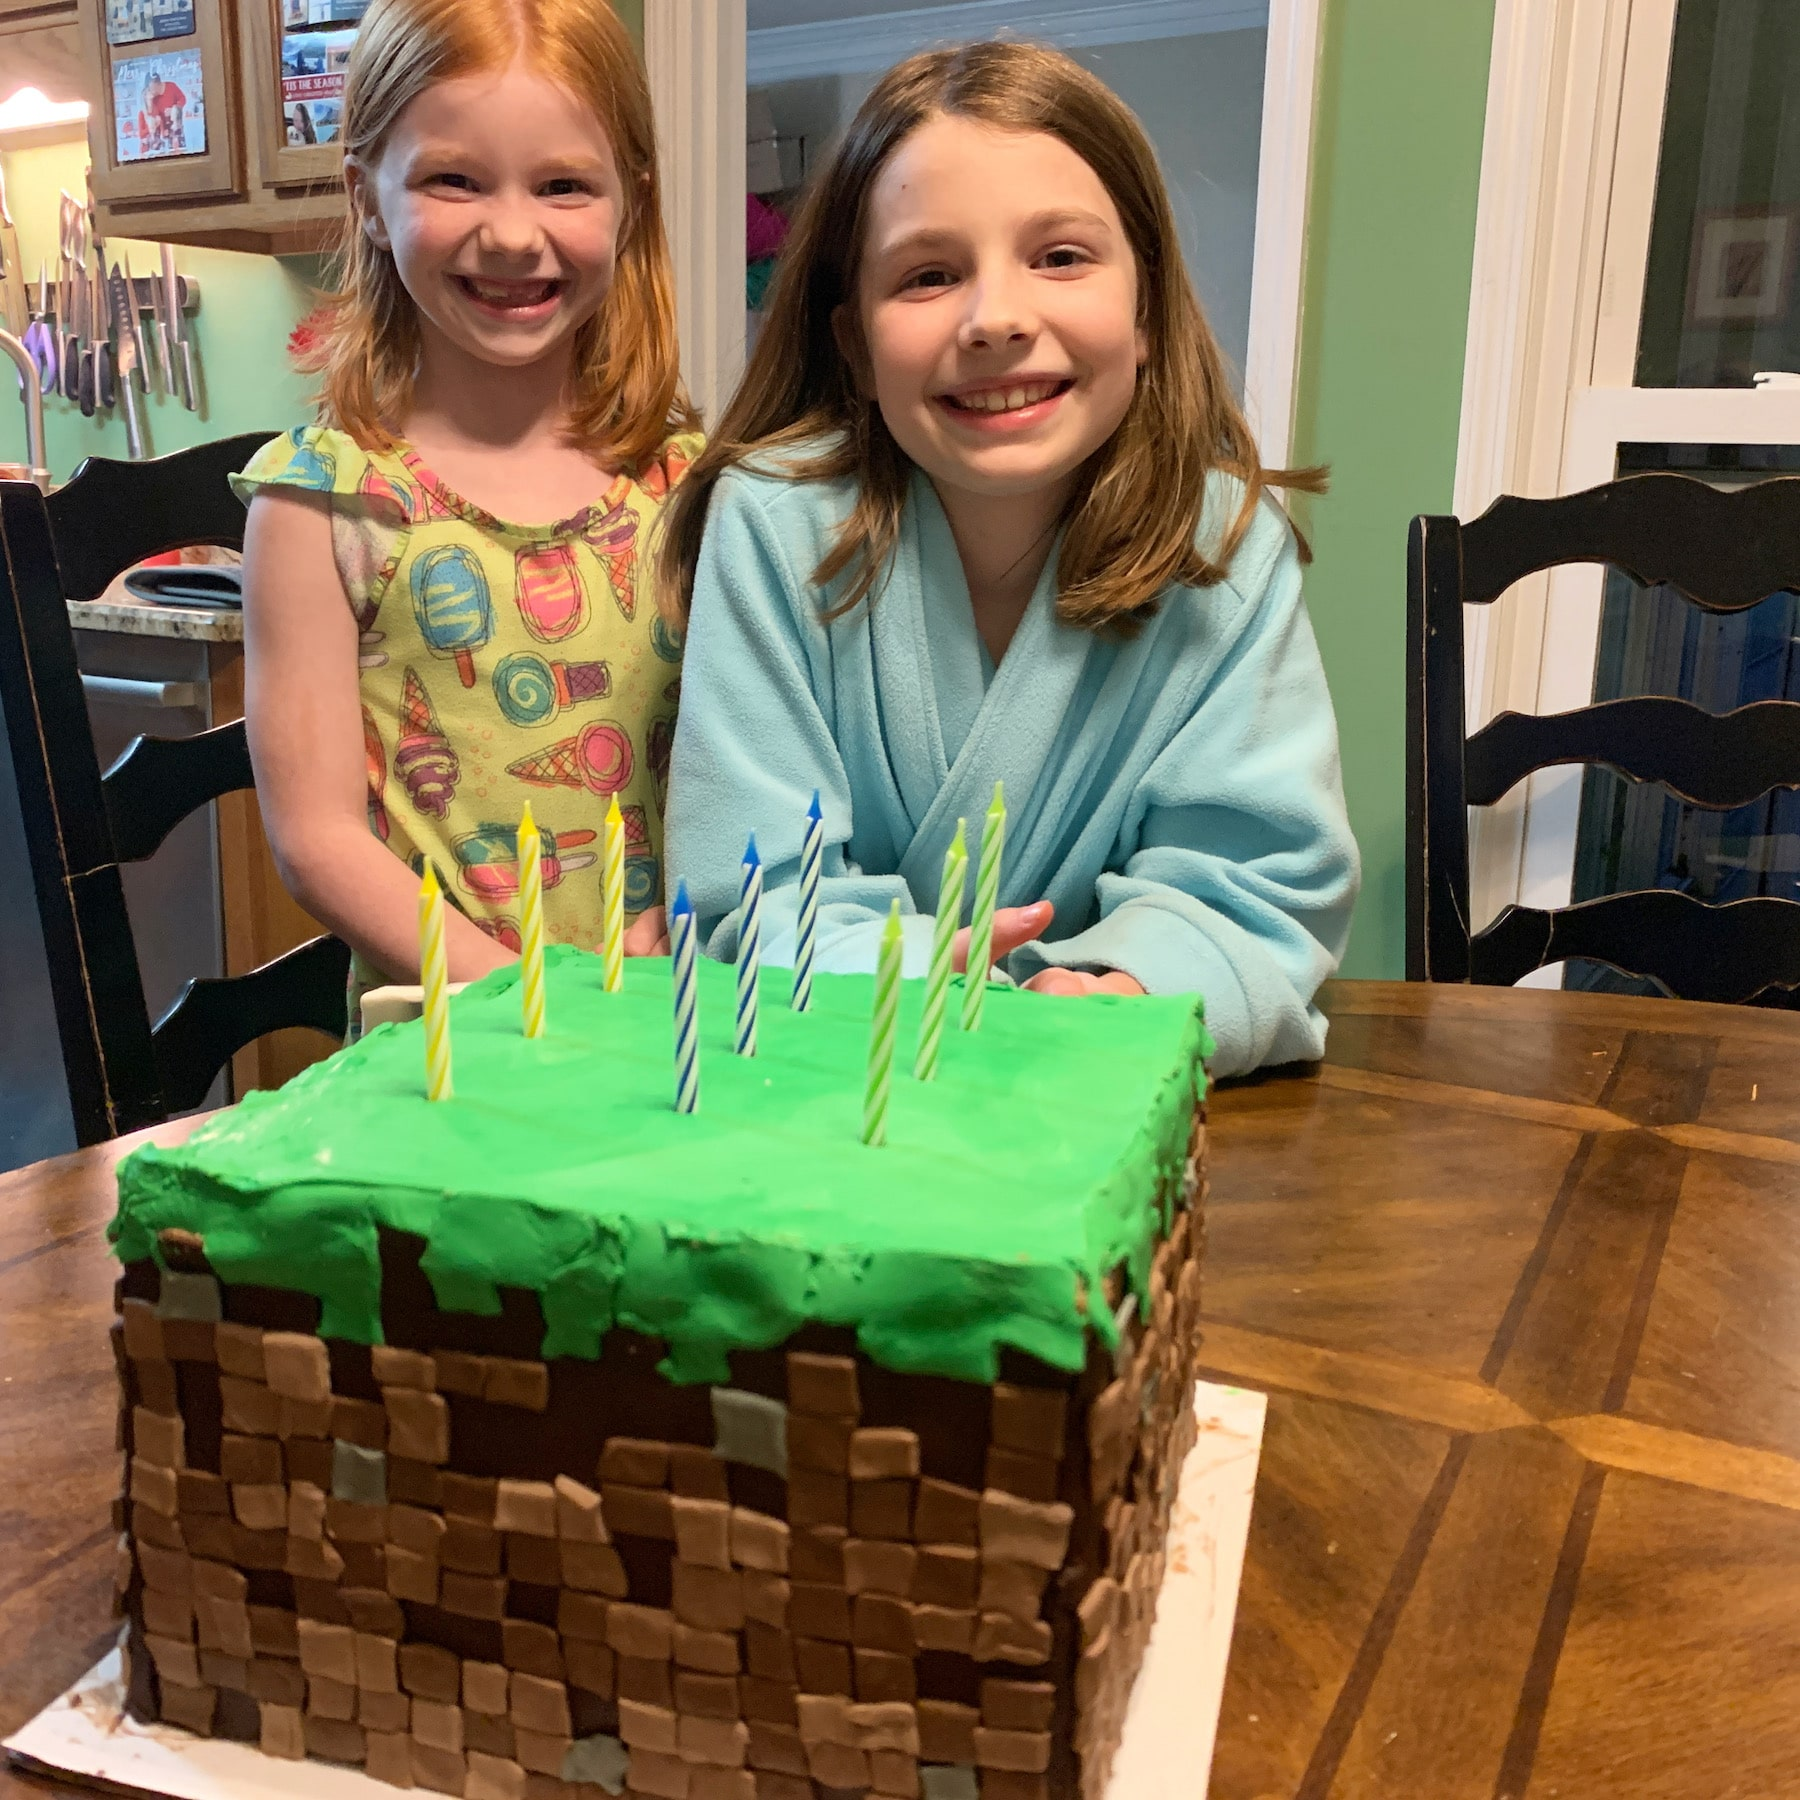 happy birthday e with minecraft cake